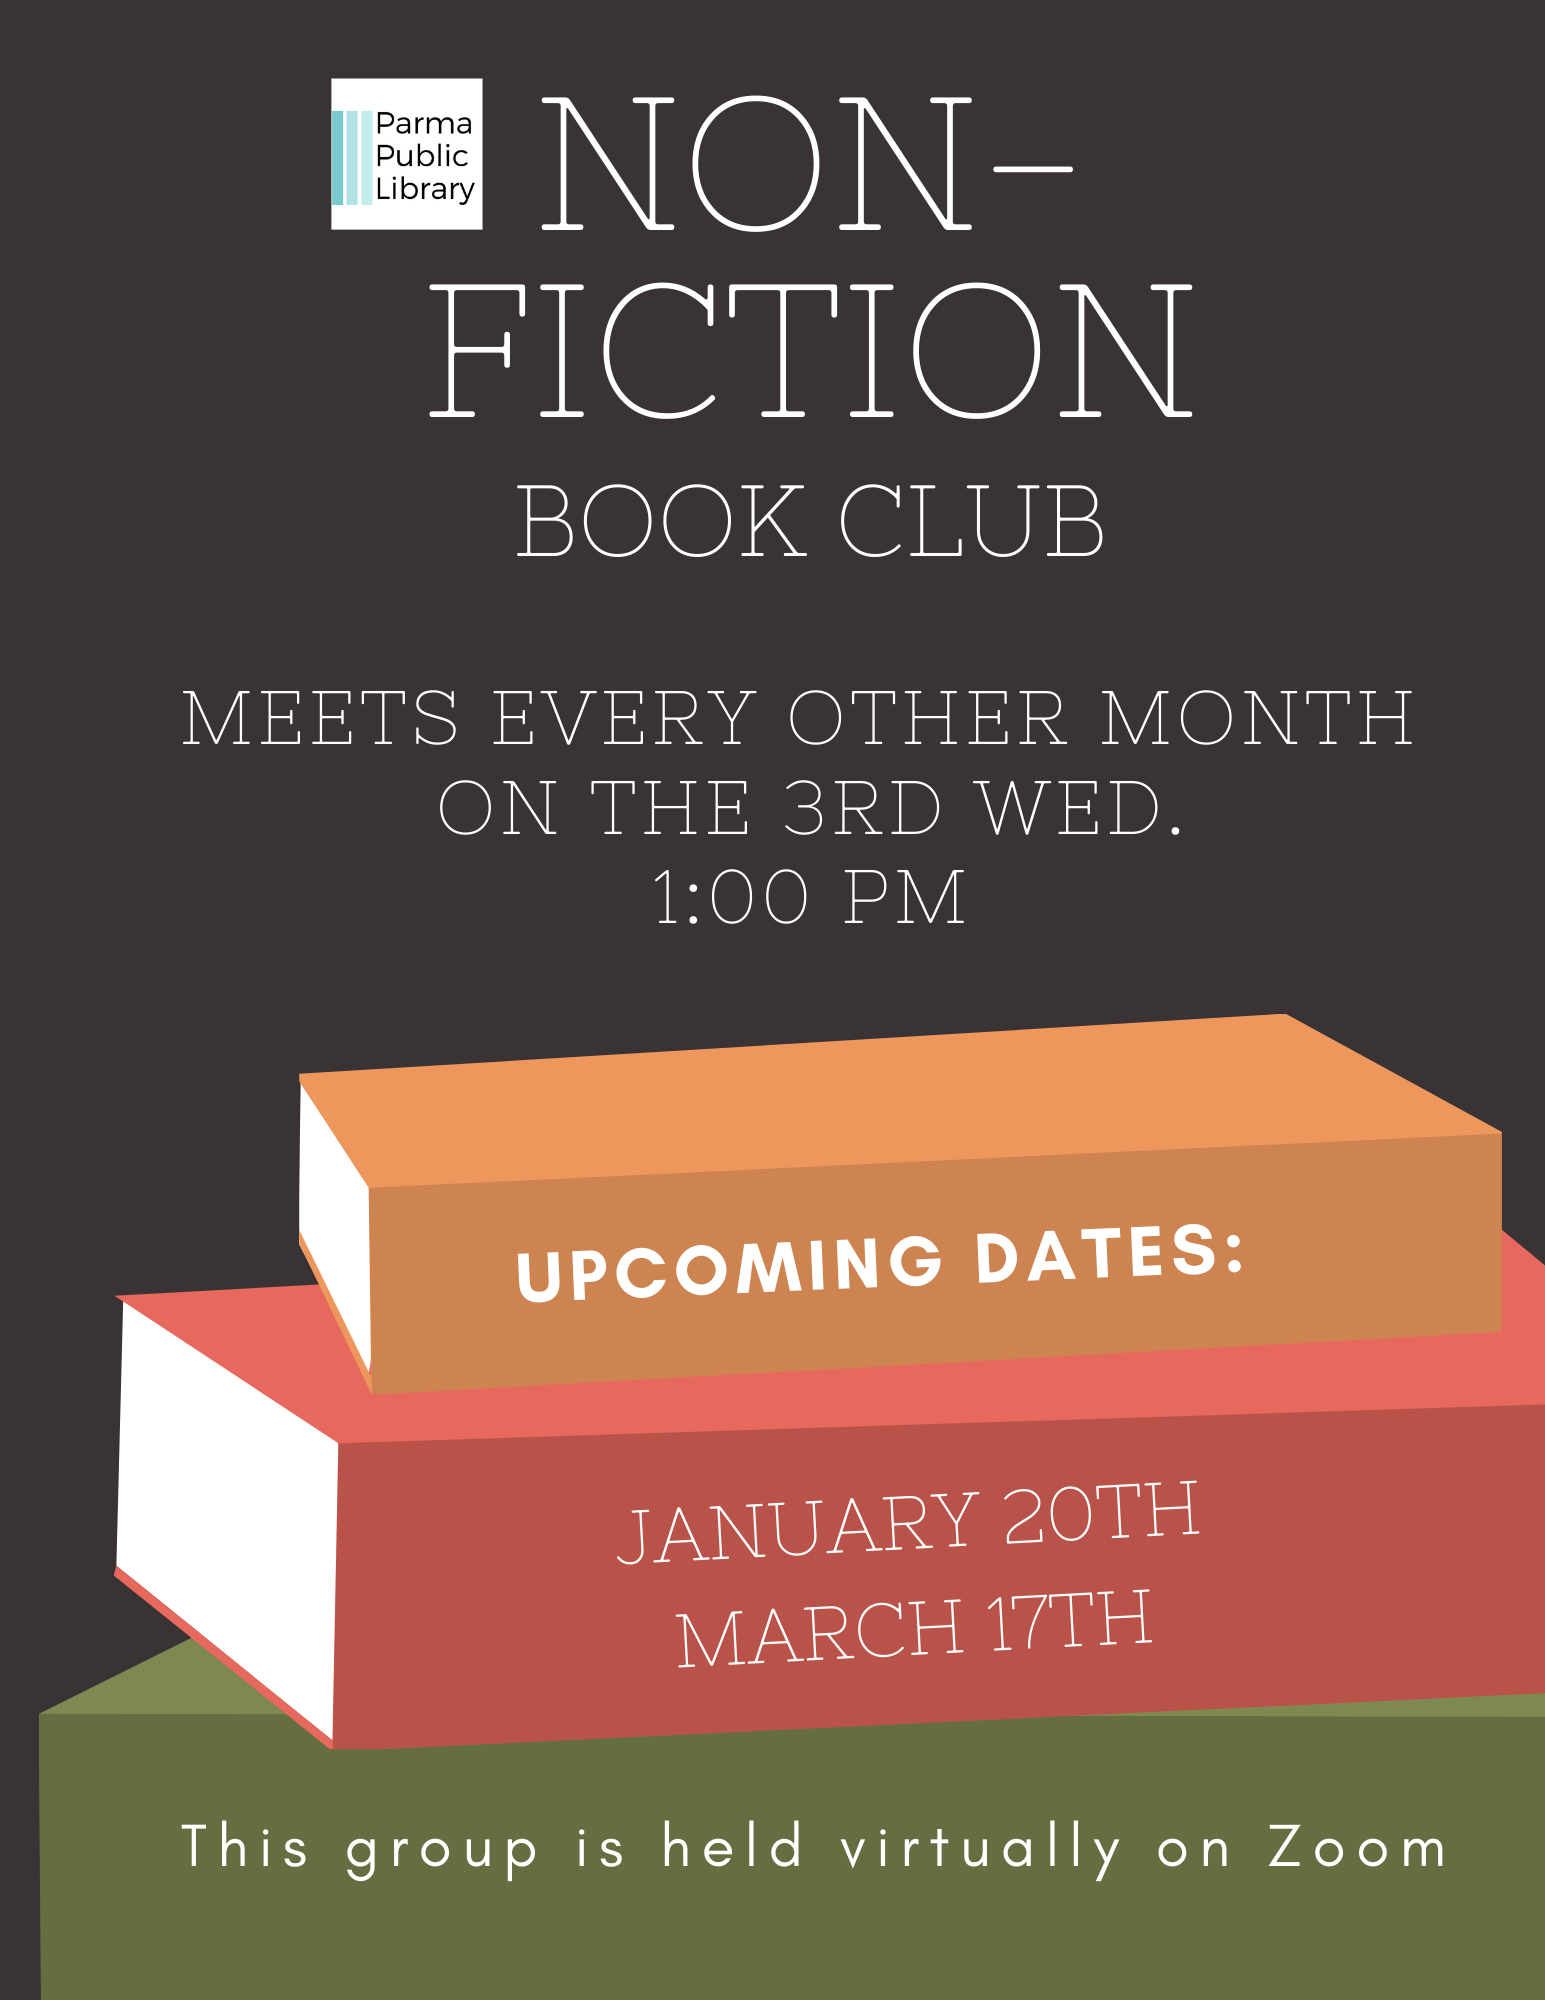 Non-Fiction Book Club VIRTUAL